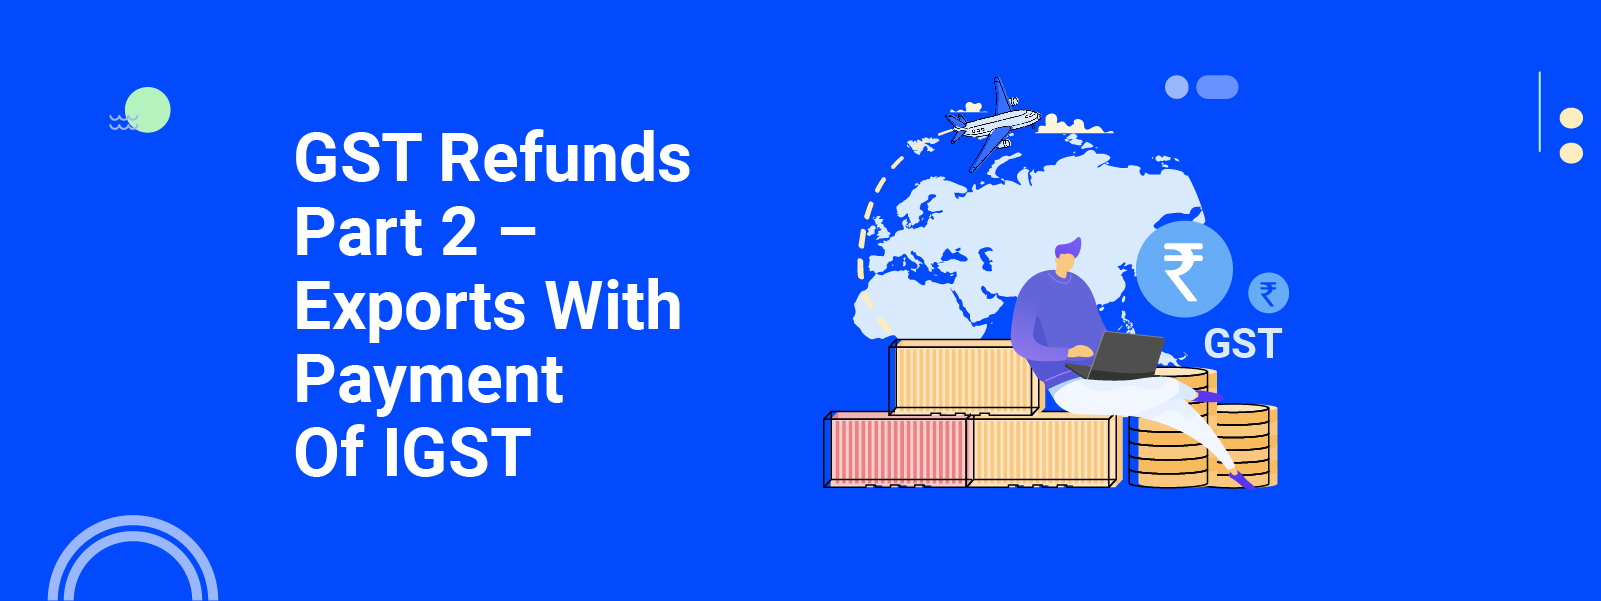 Export With Payment Of IGST: GST Refunds Part 2